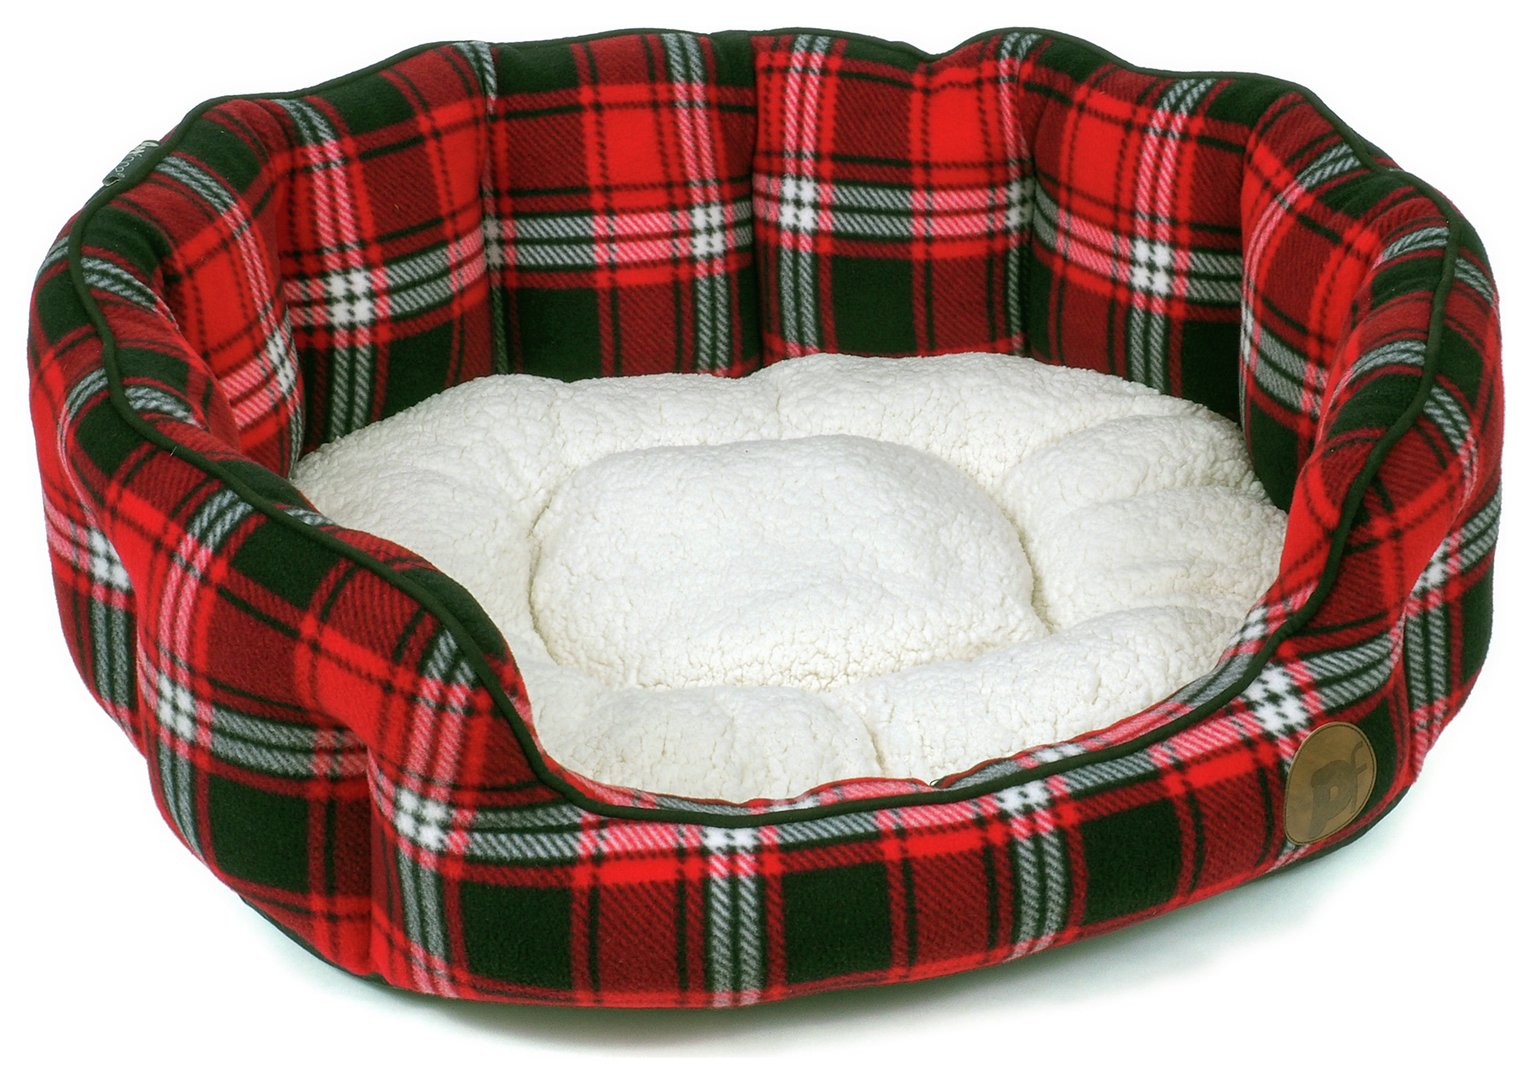 Petface Red Tartan Oval Dog Bed - Medium